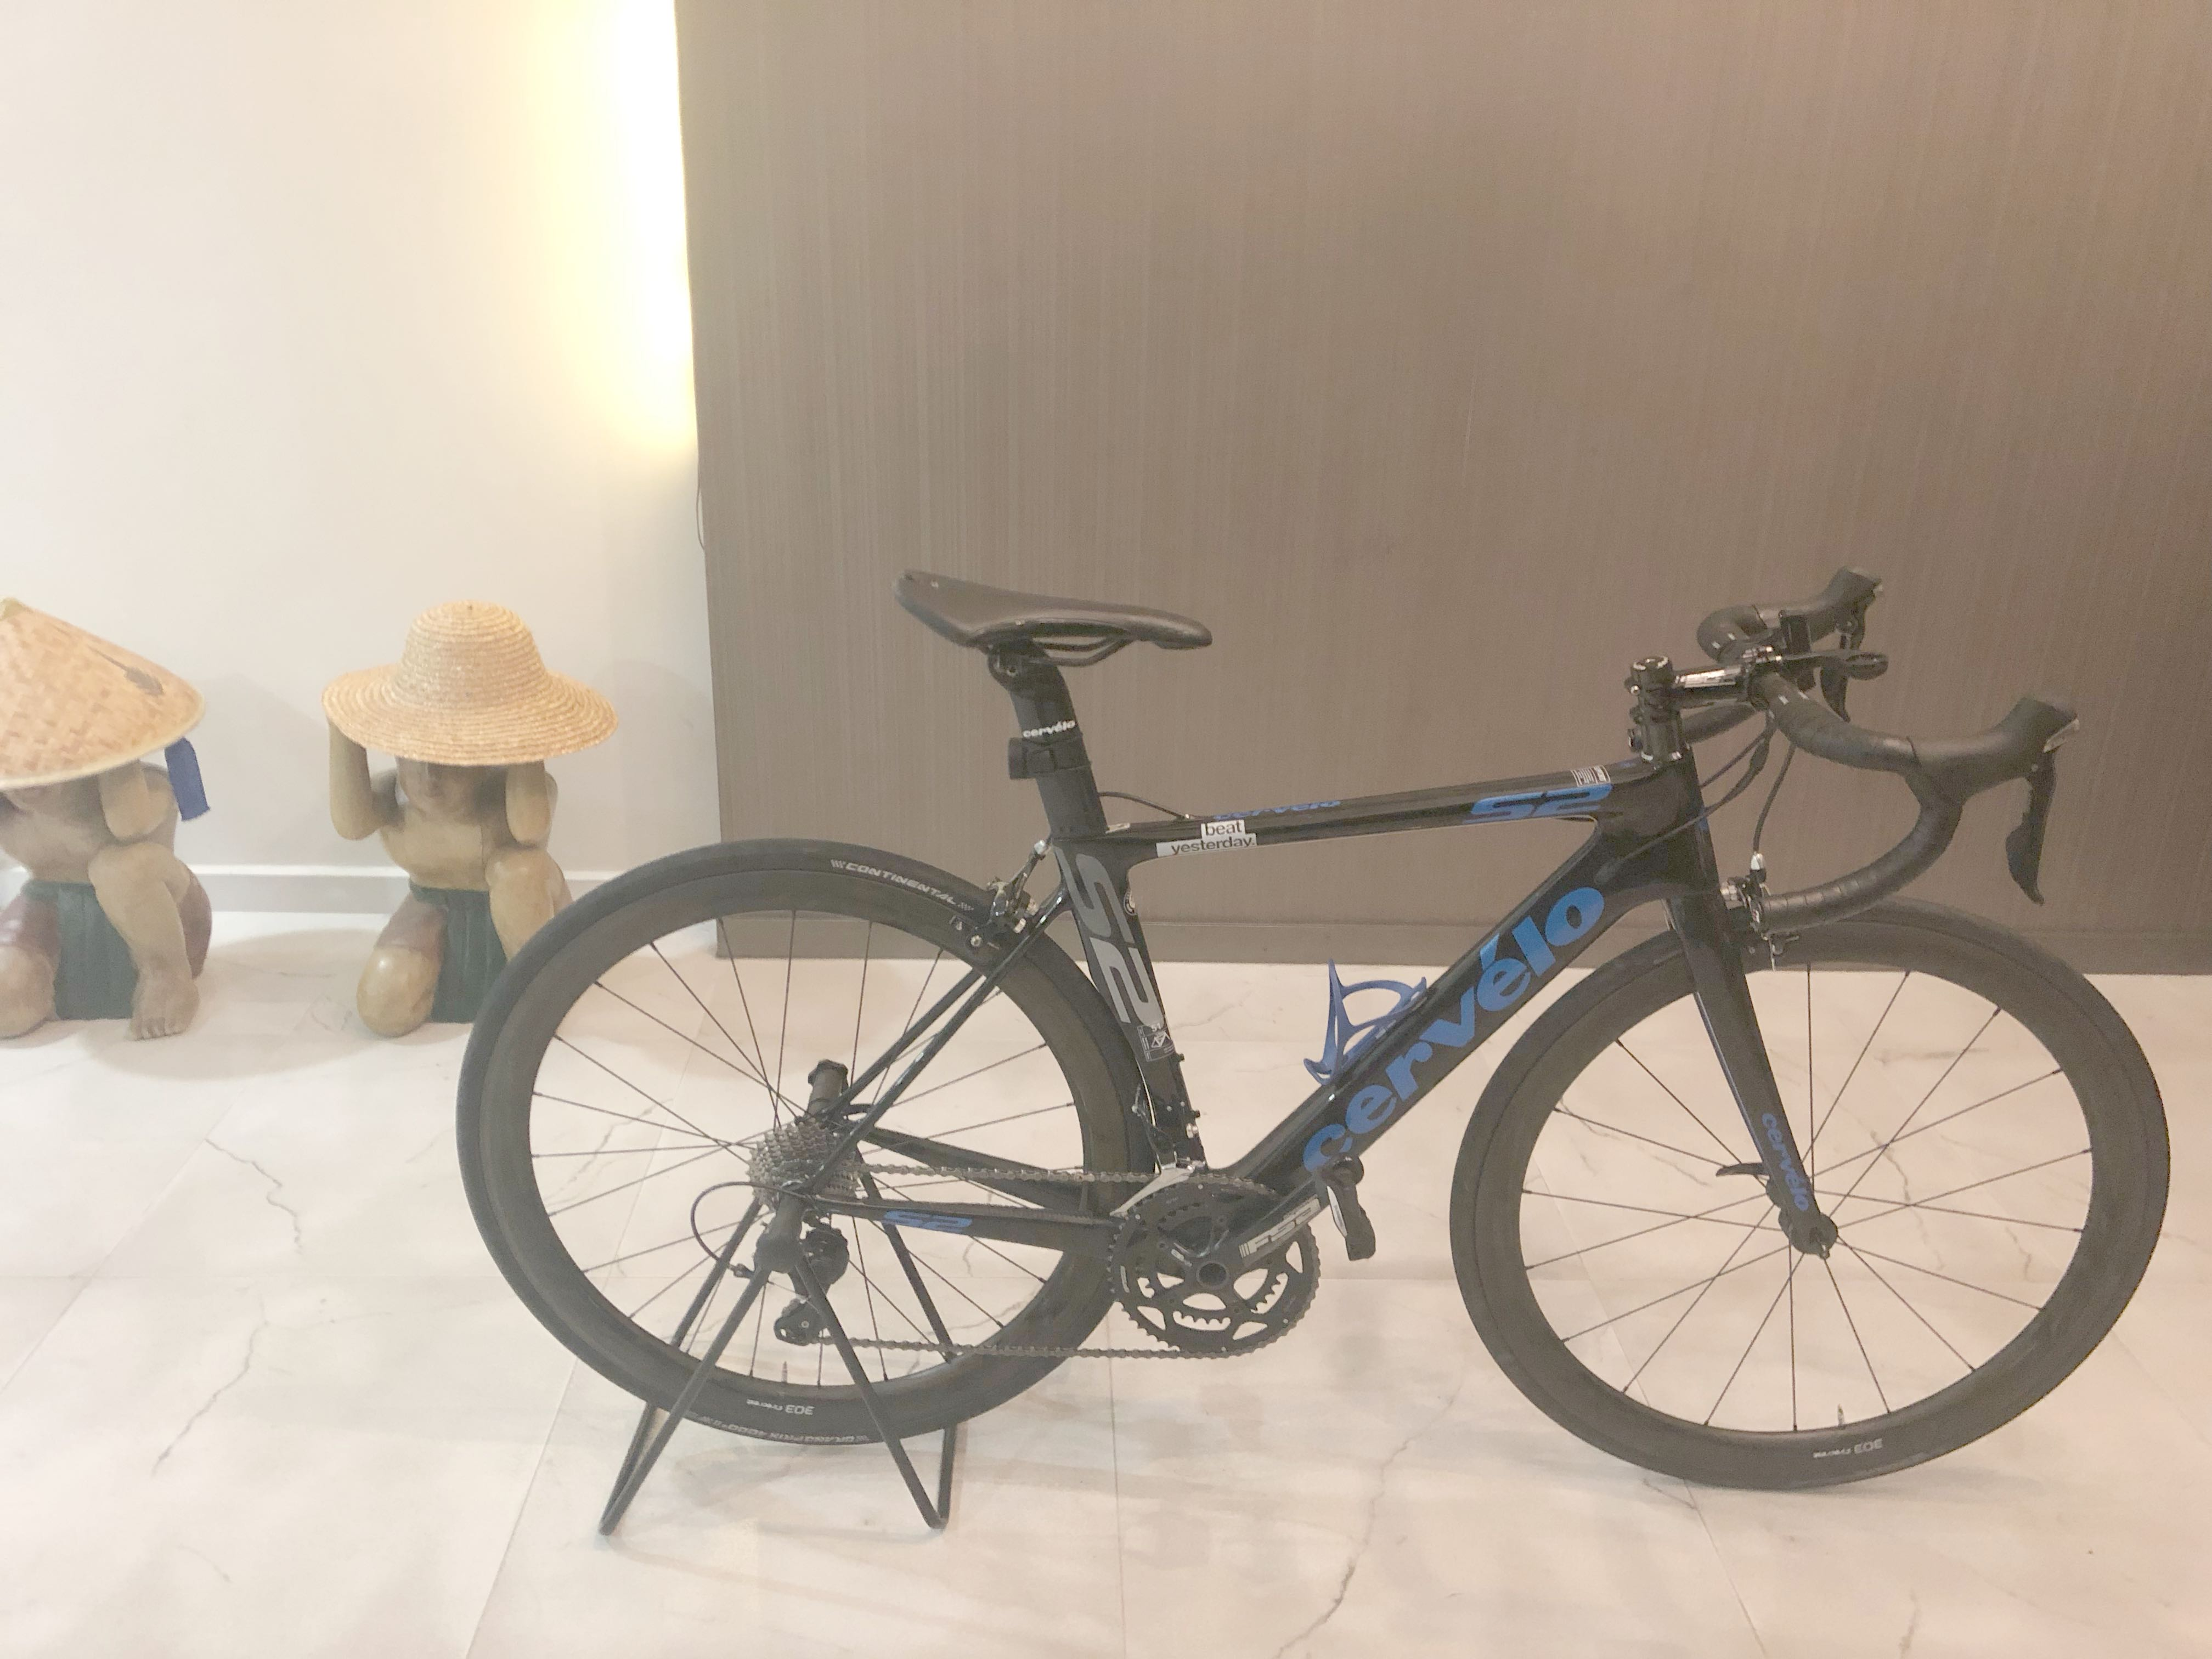 e4c6efd23f6 Cervelo Frame with 105 groupset , Bicycles & PMDs, Bicycles, Road Bikes on  Carousell